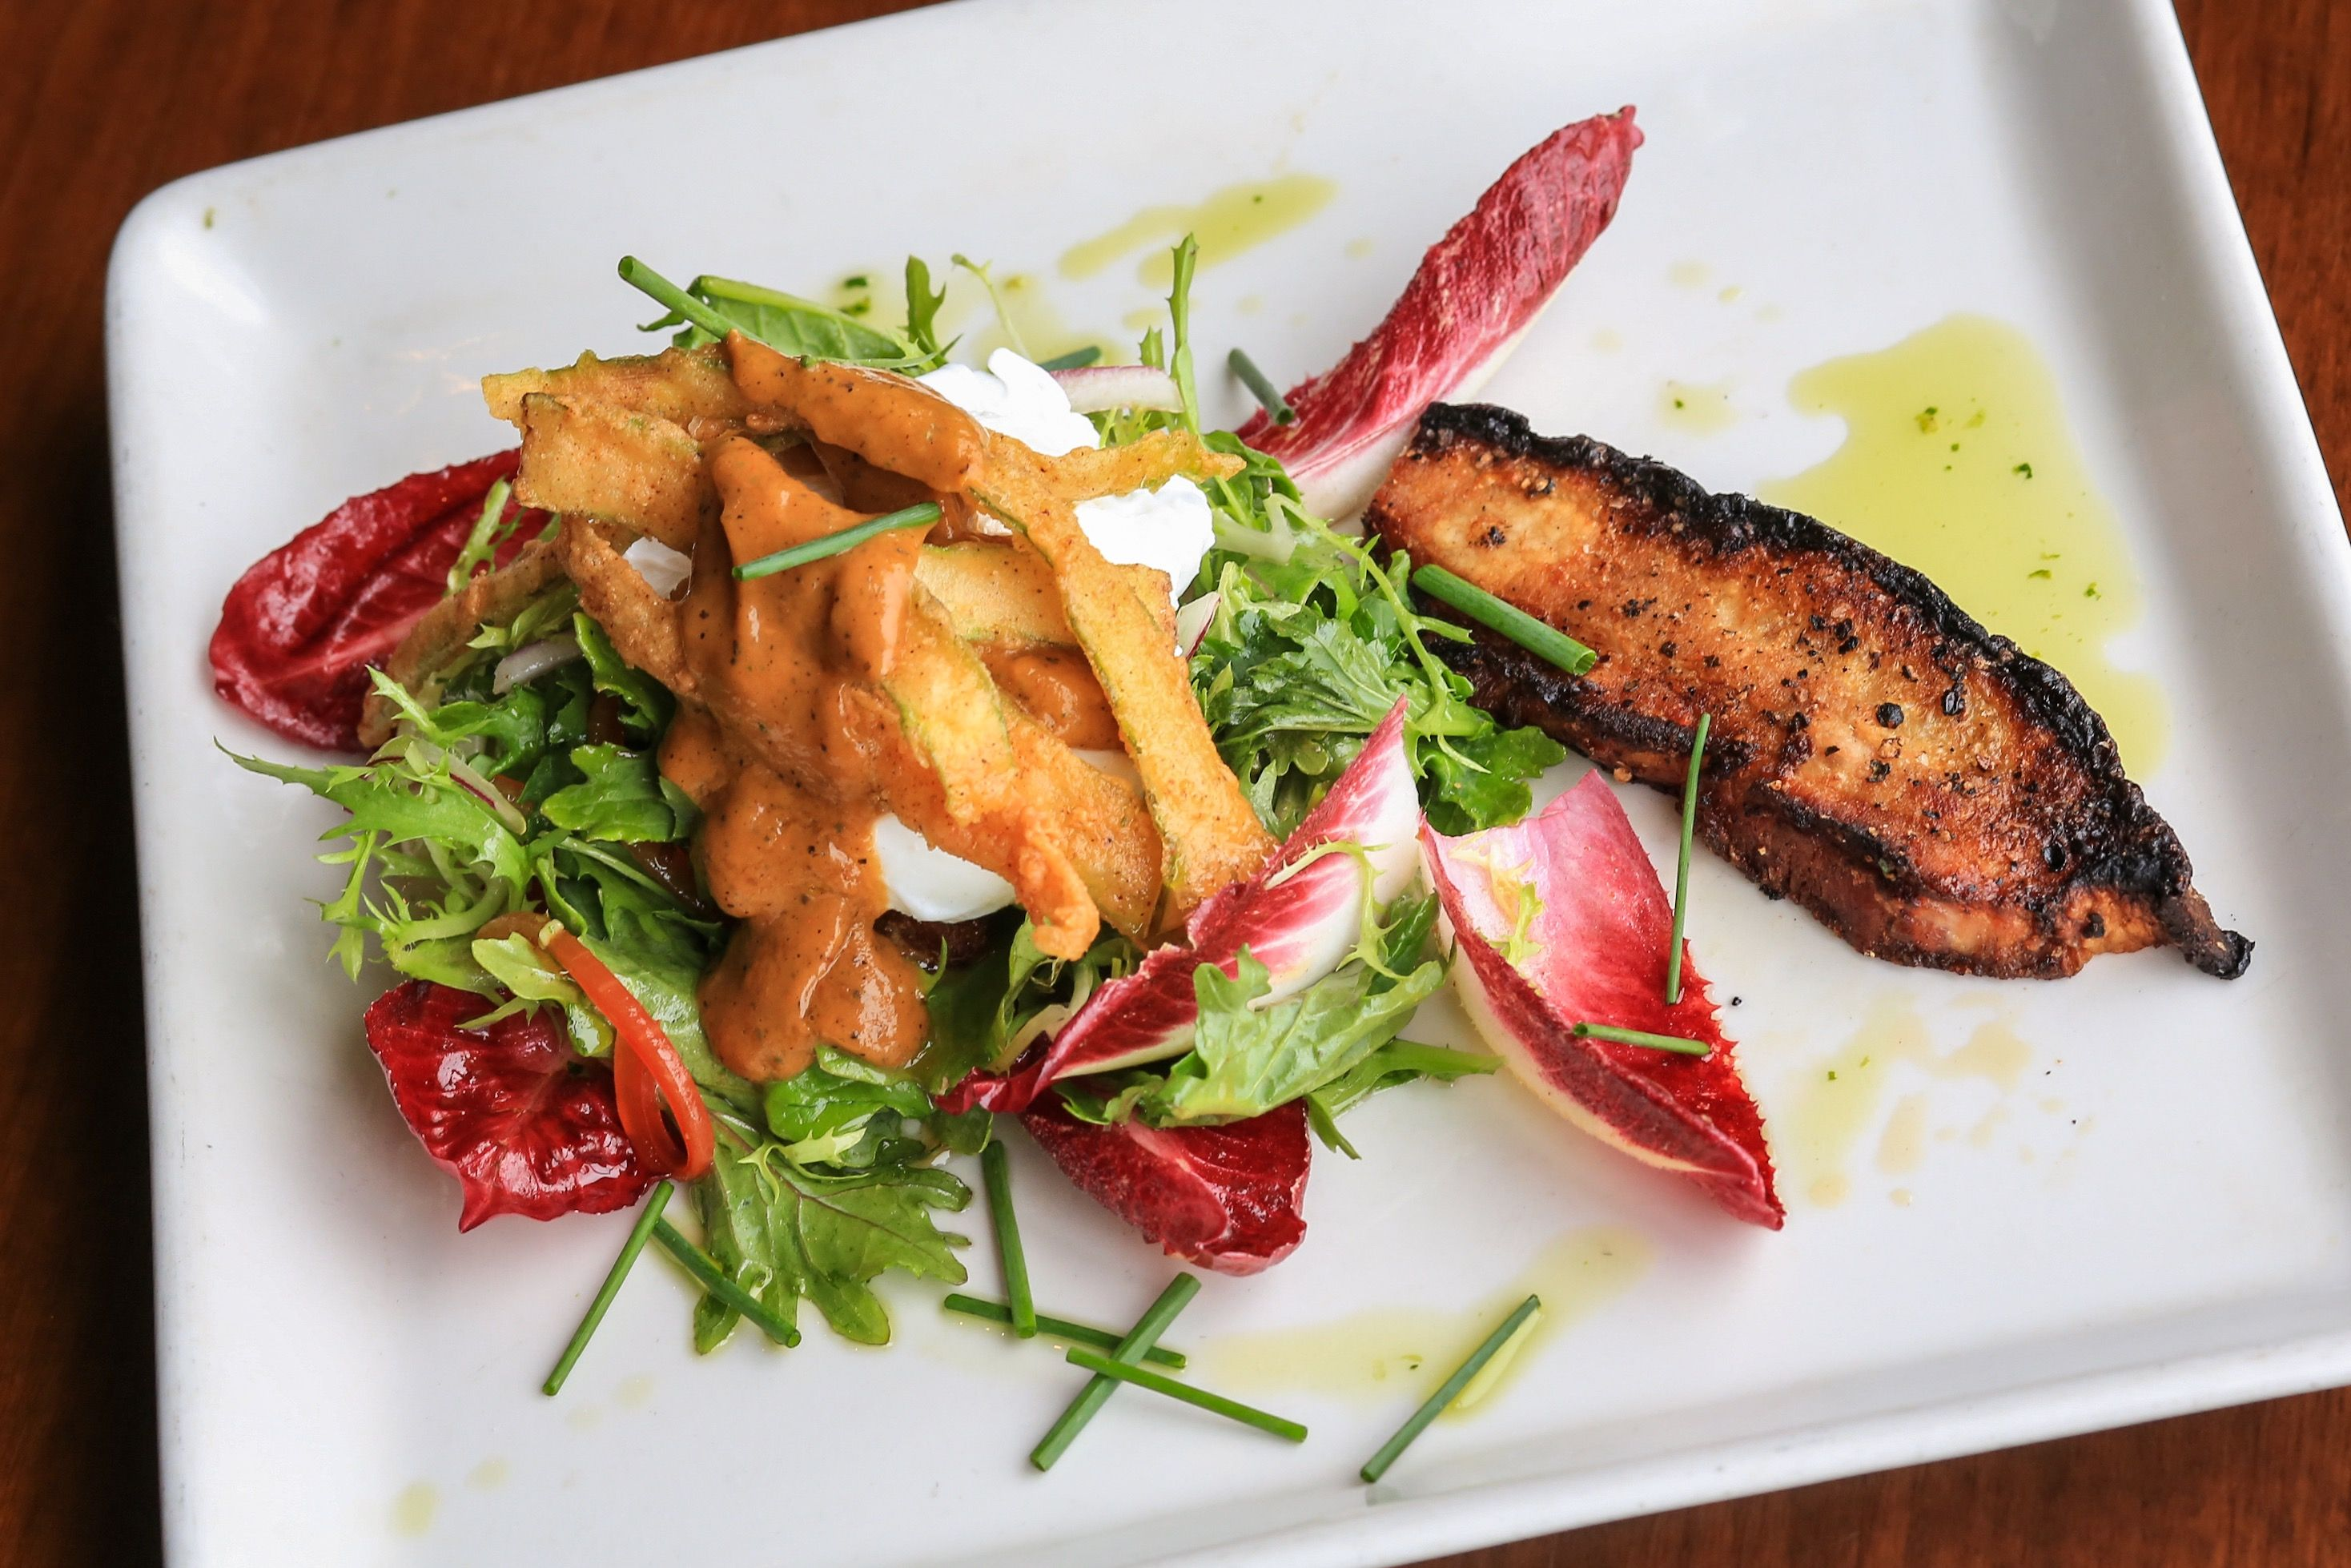 Join us this summer at Bistro Boudin to taste our summer brunch series. Every Friday, Saturday, and Sunday, between 9:30am and 11:30am, this series will highlight the freshest flavors of summer. Locals and visitors alike will savor the special rotating tastes with optional wine pairing. Cheers! http://www.bistroboudin.com/